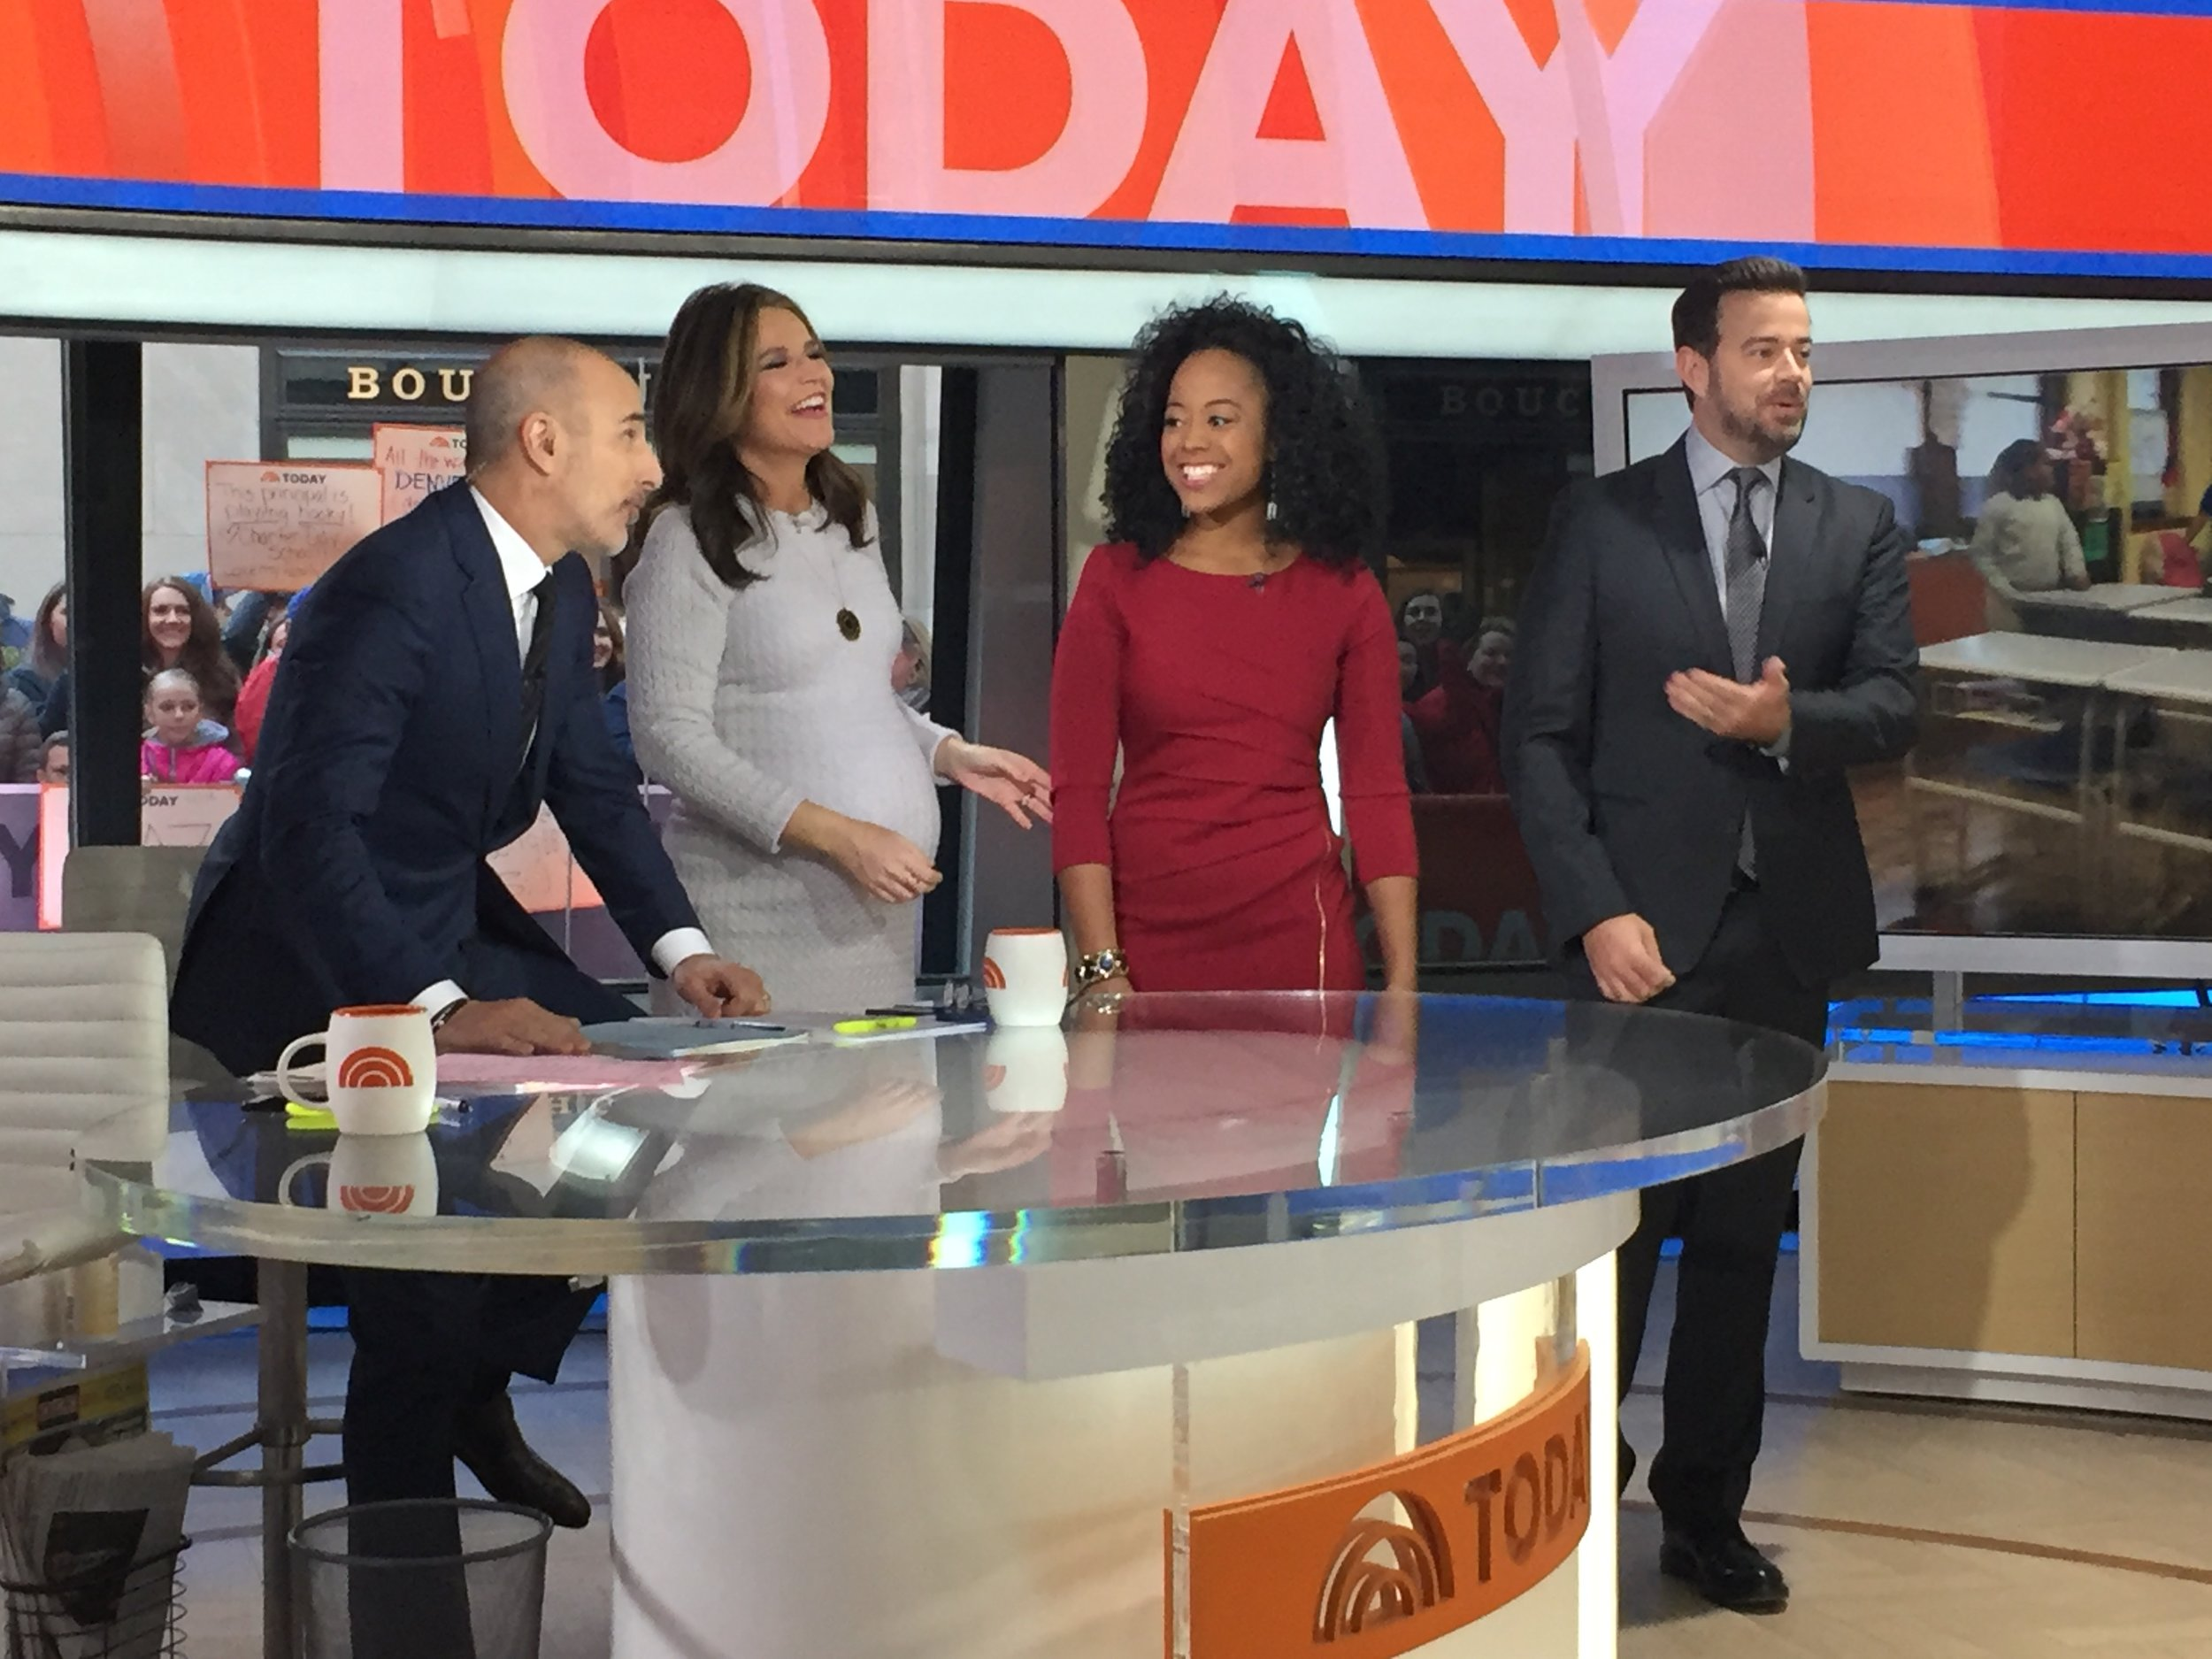 Jasmyn Wright engaging with the the cast of The Today Show